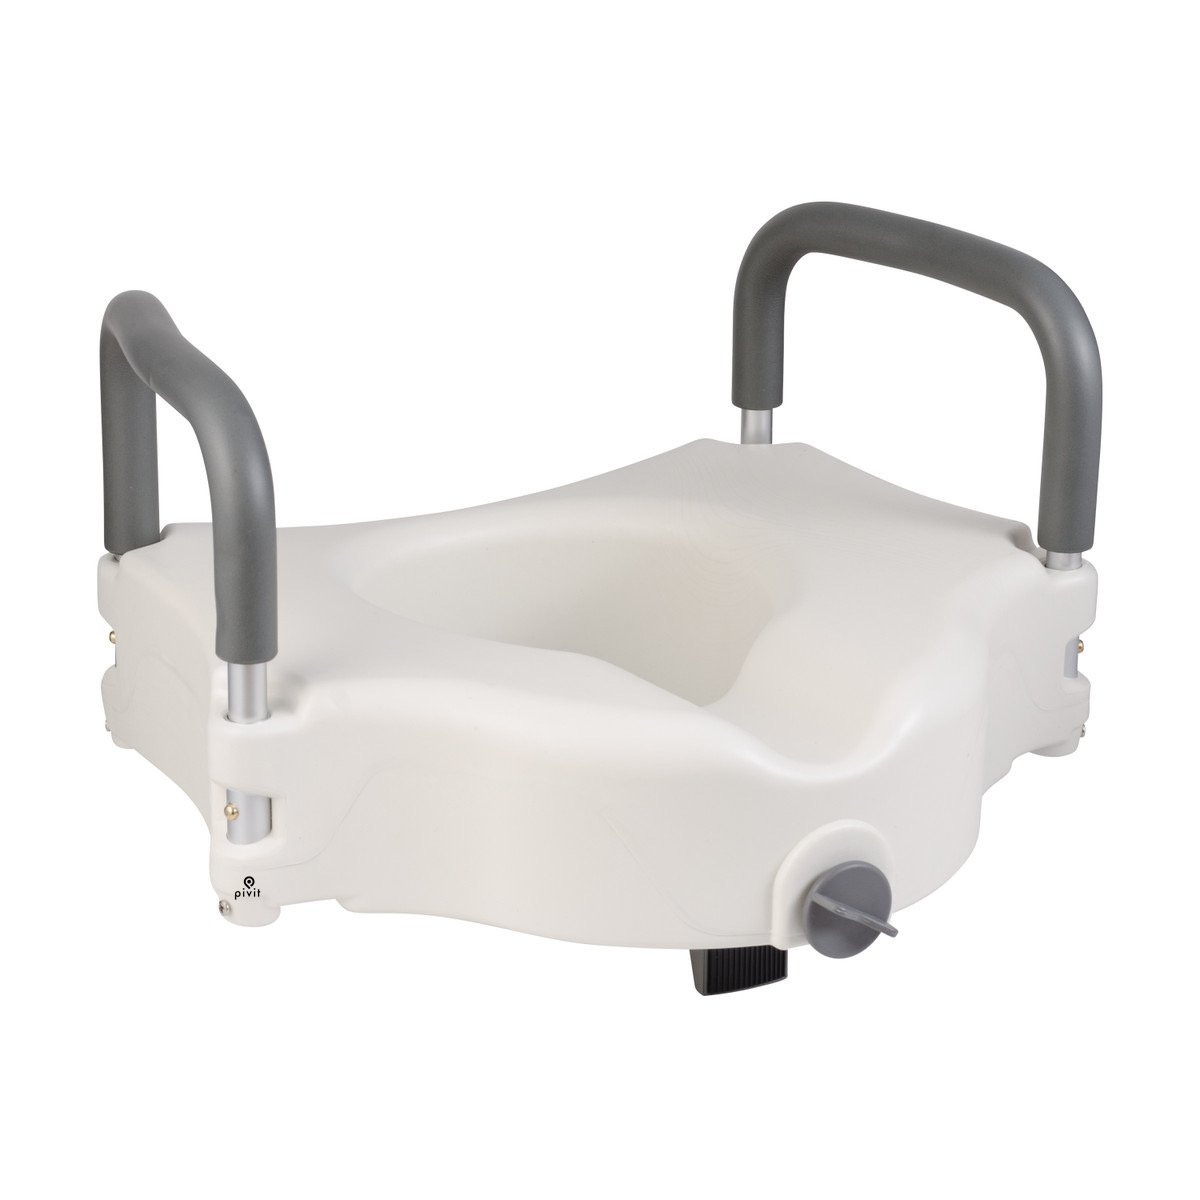 Pivit Locking Raised Toilet Seat with Removable Padded Arms - Lightweight & Portable Elevated Seat Riser with Padded Handles - Toilet Seat Lifter for Bathroom Safety Fits Most Toilets - Prevents Falls